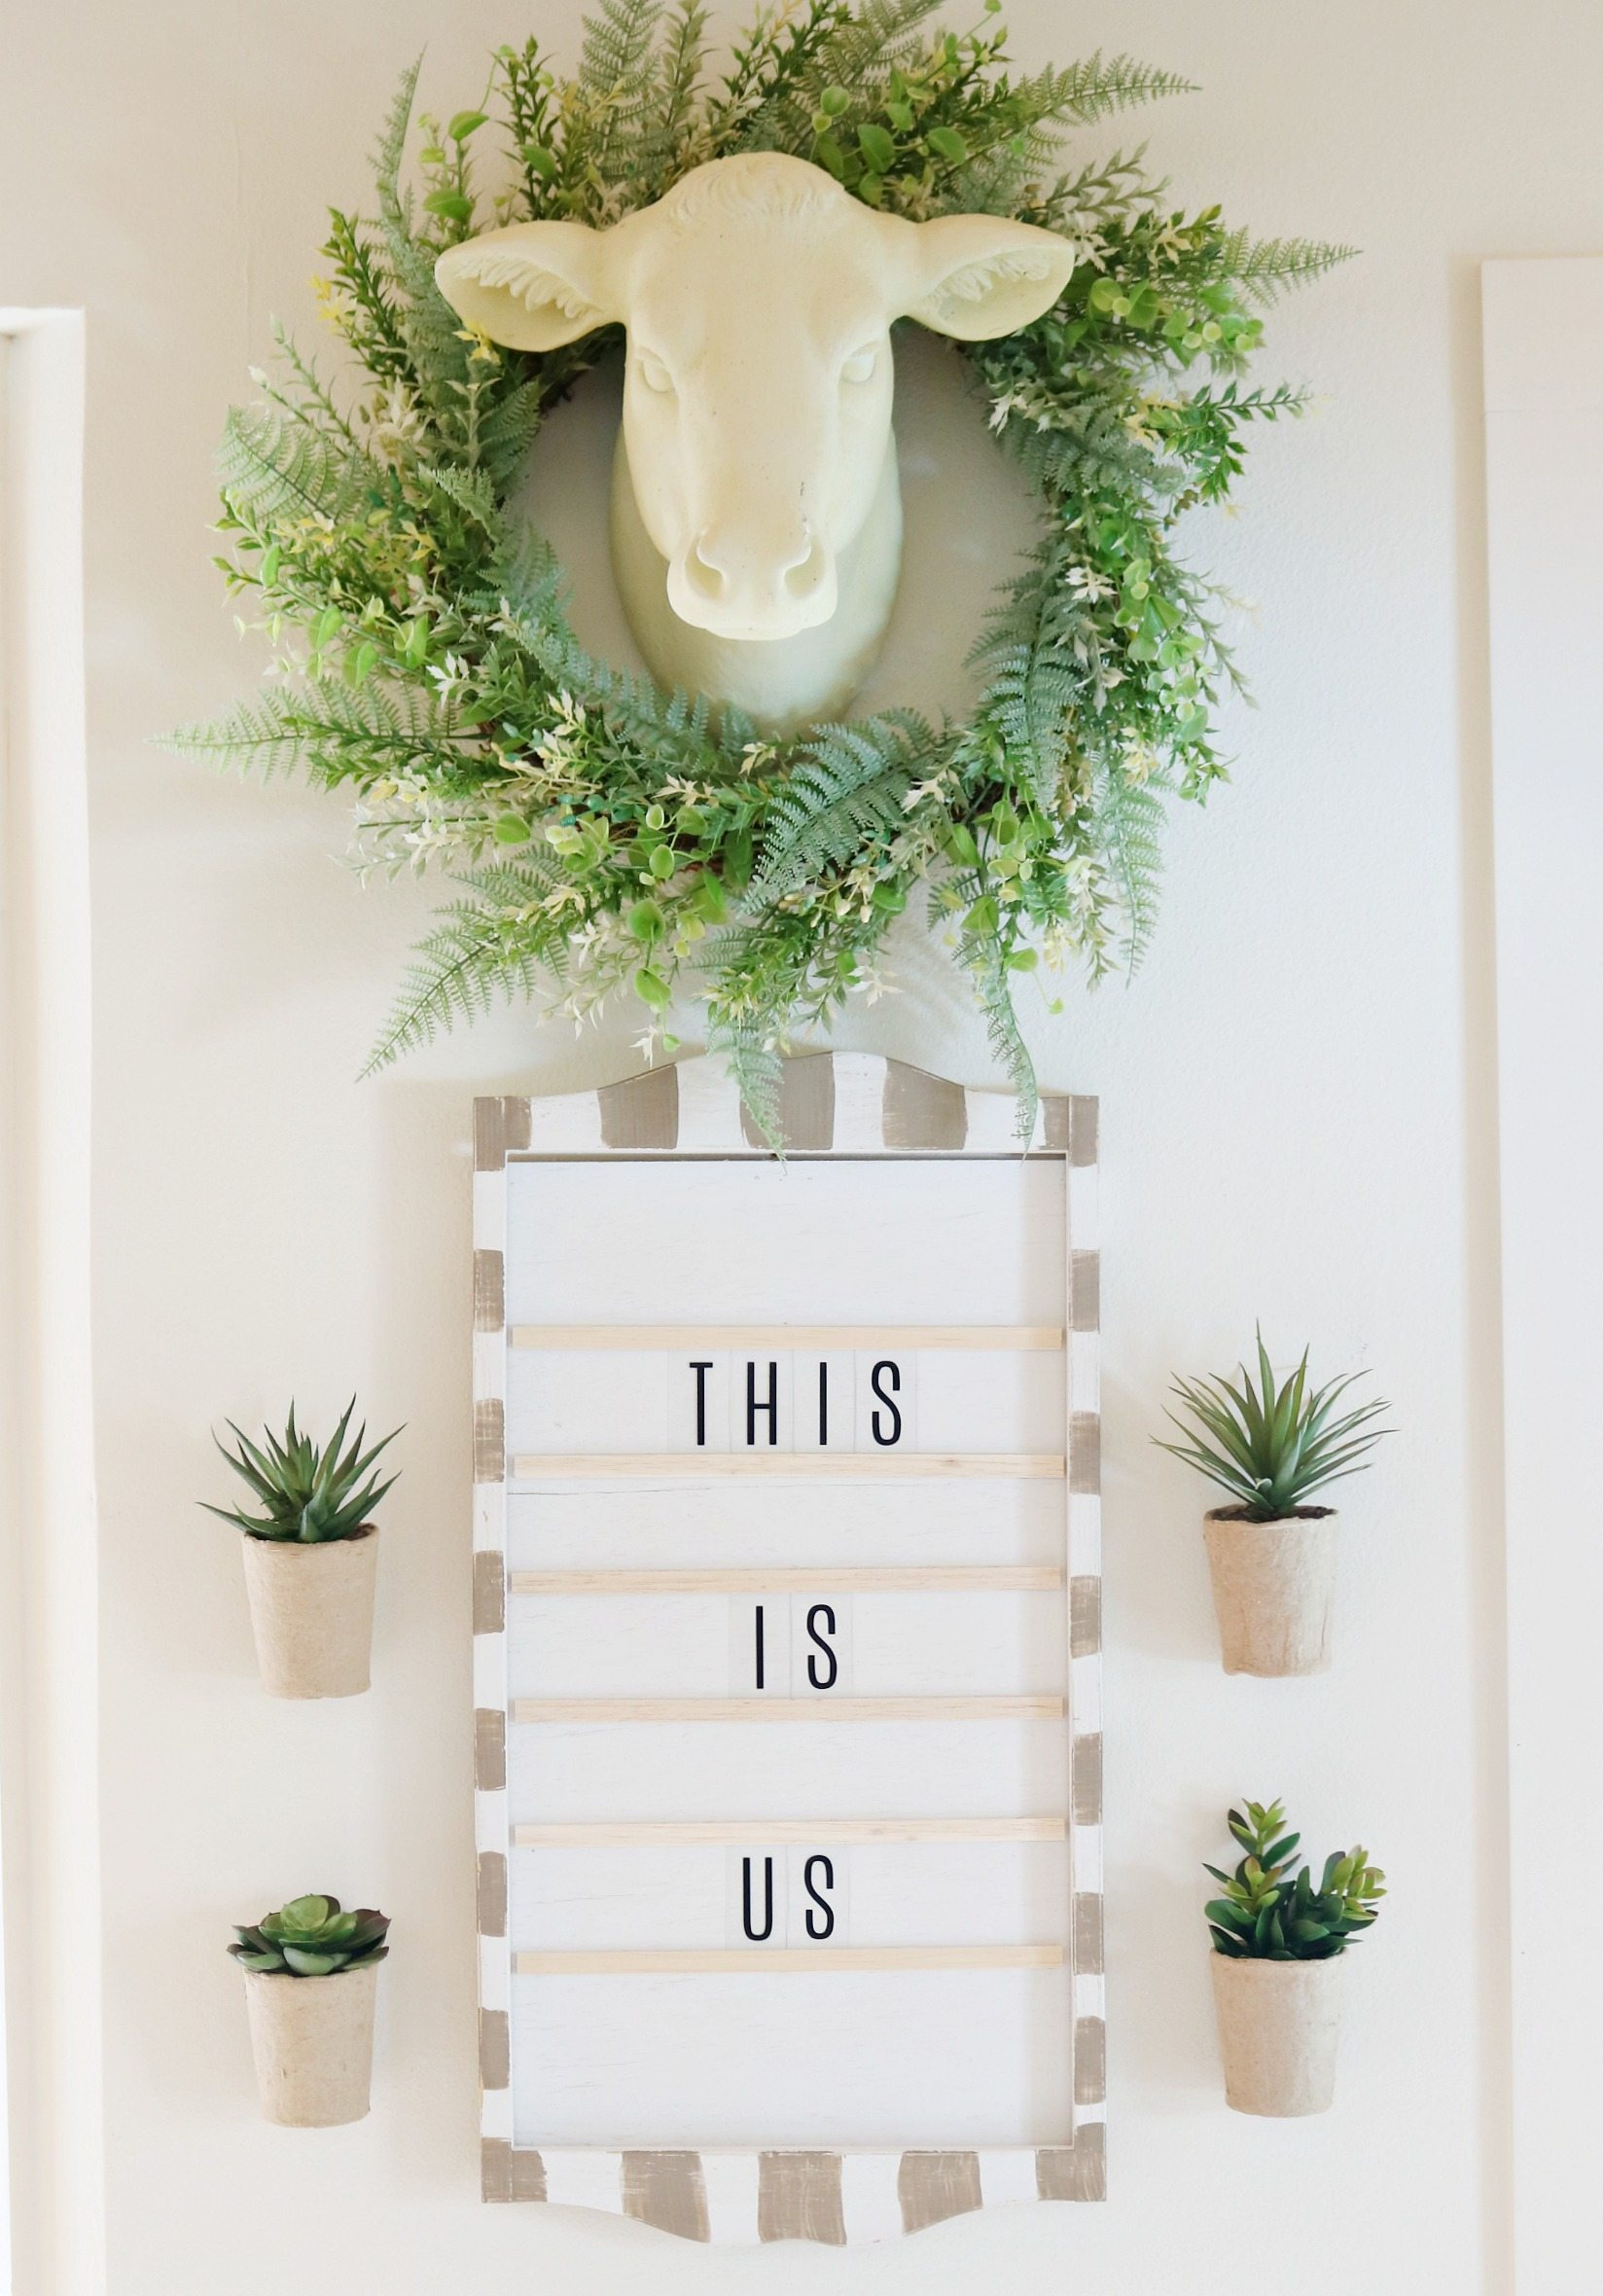 Farmhouse decor this is us sign